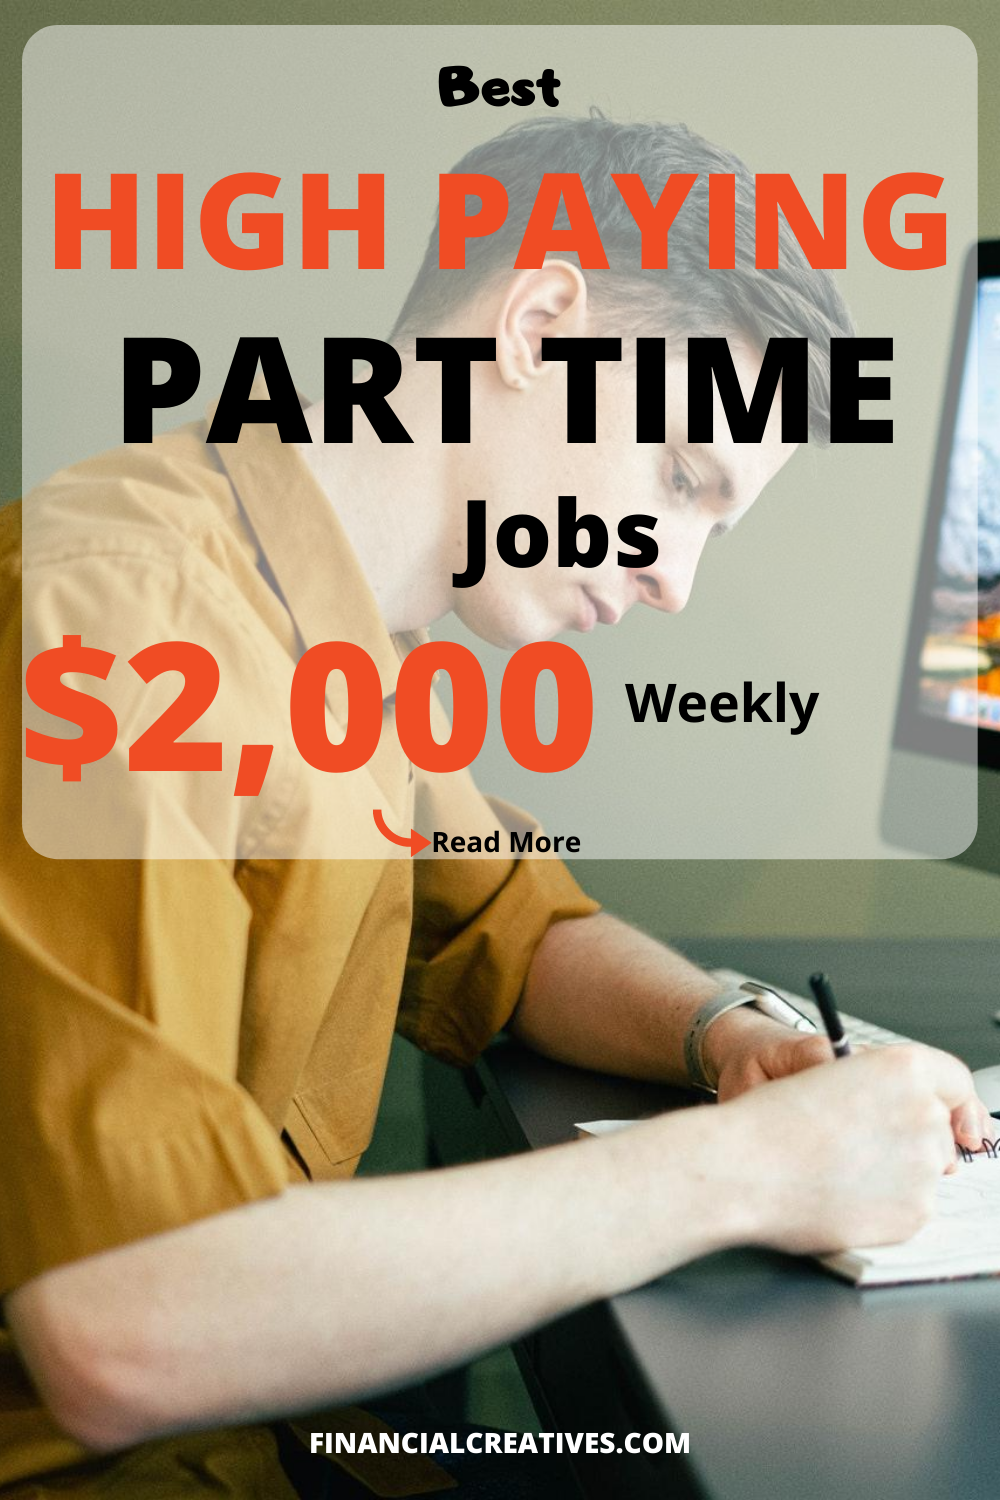 Best High Paying Part Time Jobs, $2000 Weekly